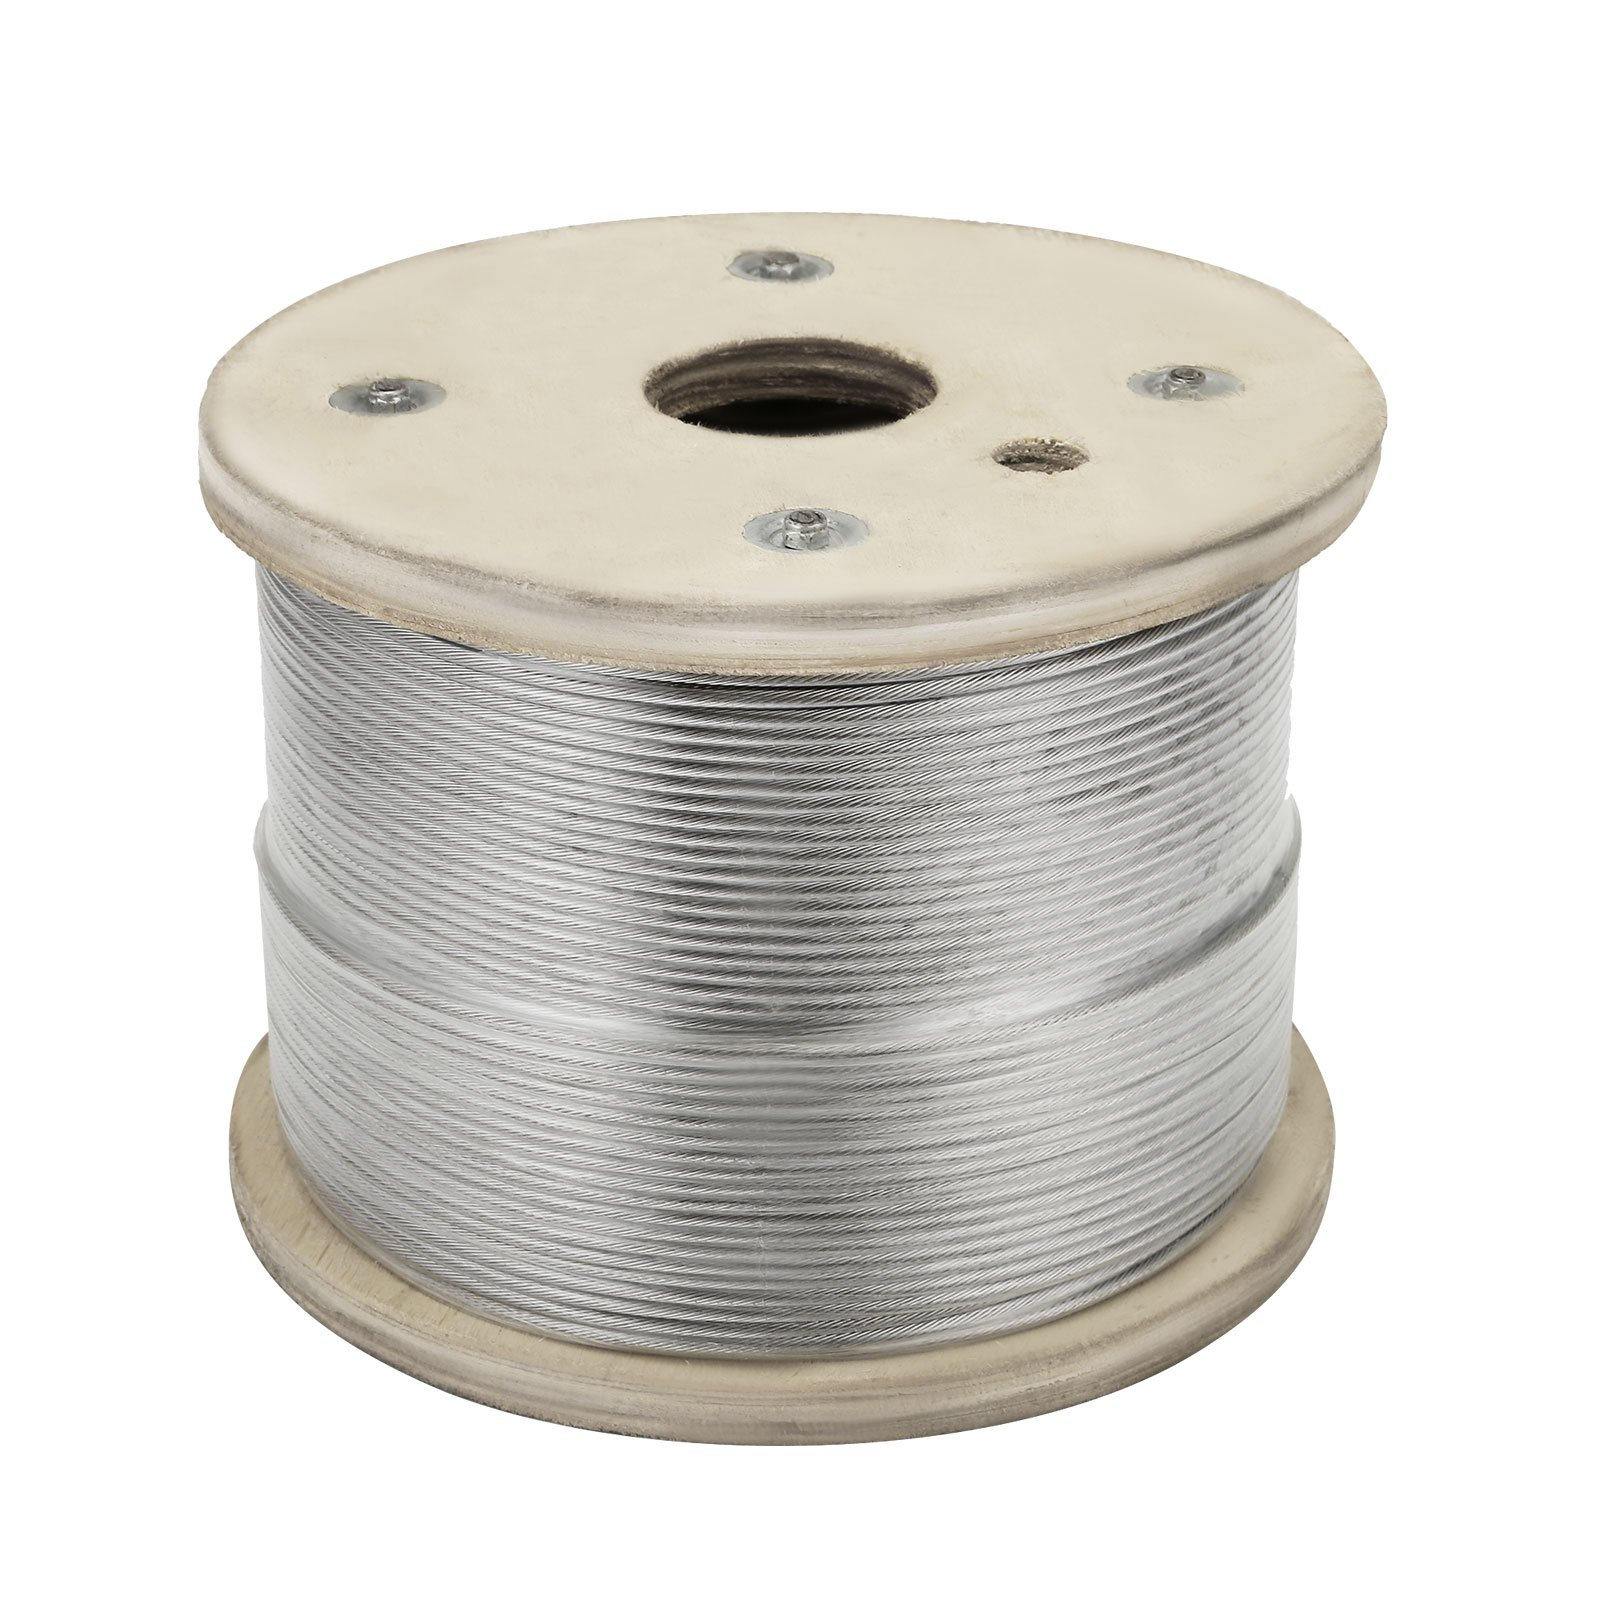 Happybuy Stainless Steel Cable 500FT 0.125 Inch 1x19 Steel Cable Wire Rope Grade 316 Cable Railing (T316)